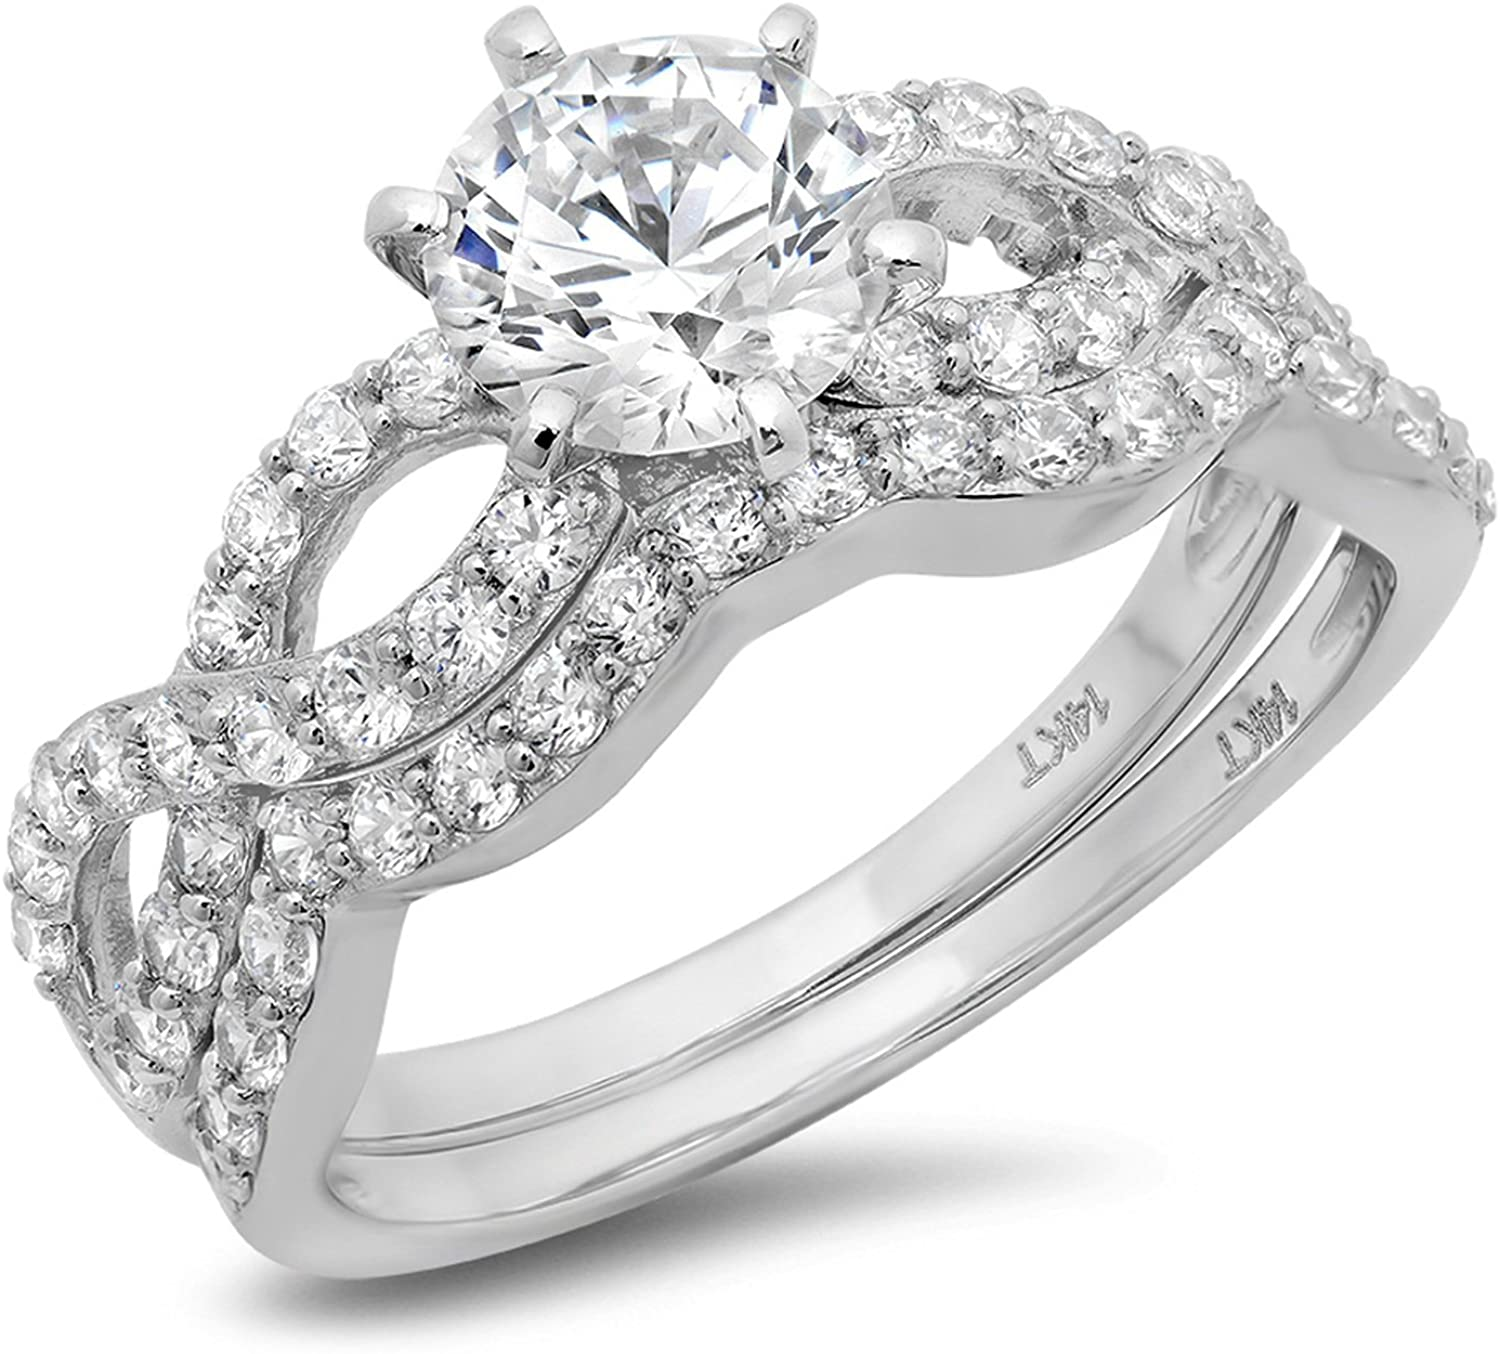 Round Cut Simulated Diamond 1.50 Ct Pave Halo Wedding Bridal Engagement Ring Band Cubic Zirconia 14K White Gold Ring For Women - Clara Pucci